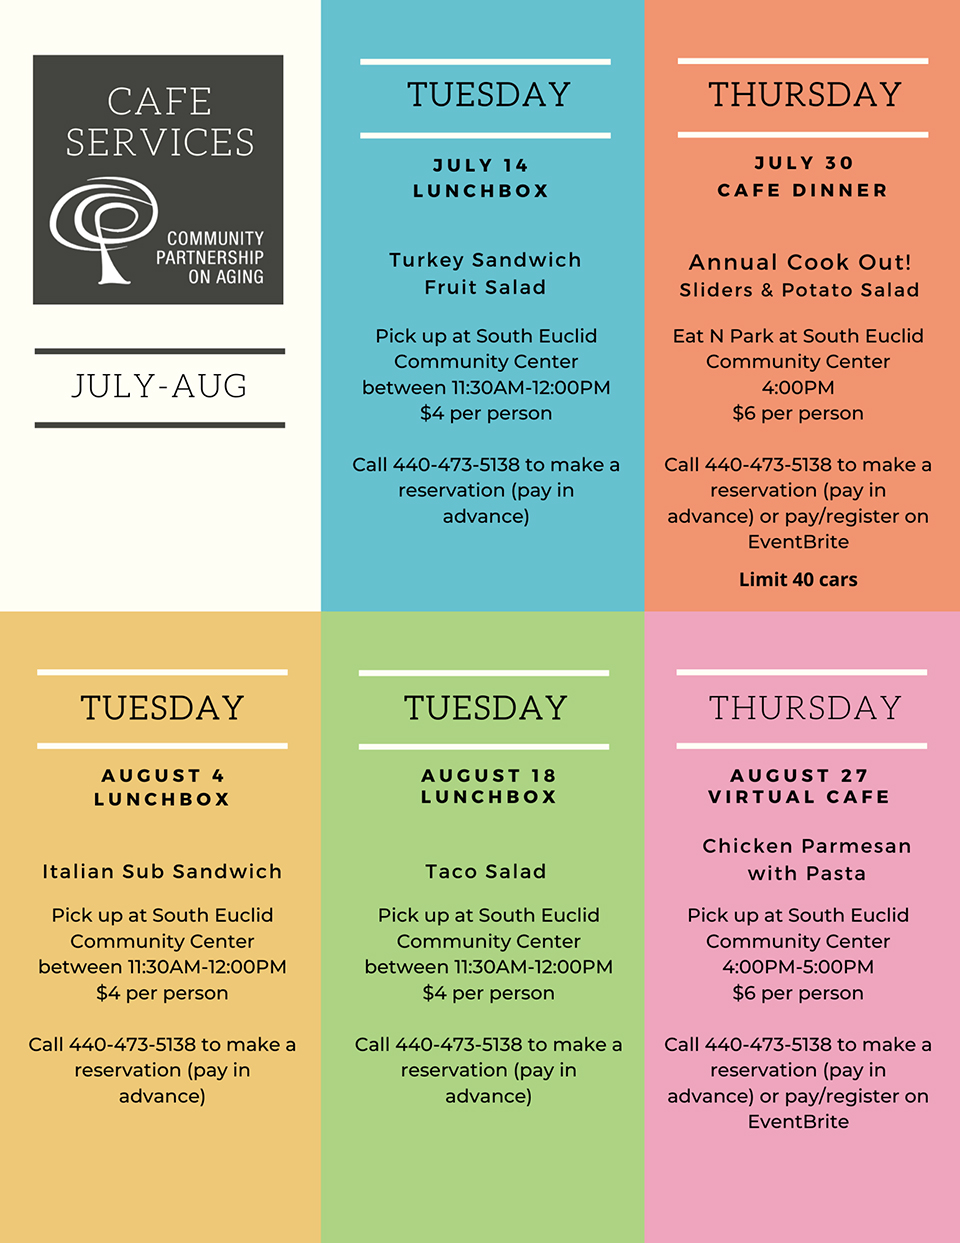 CPA Cafe Services Menu and Schedule.